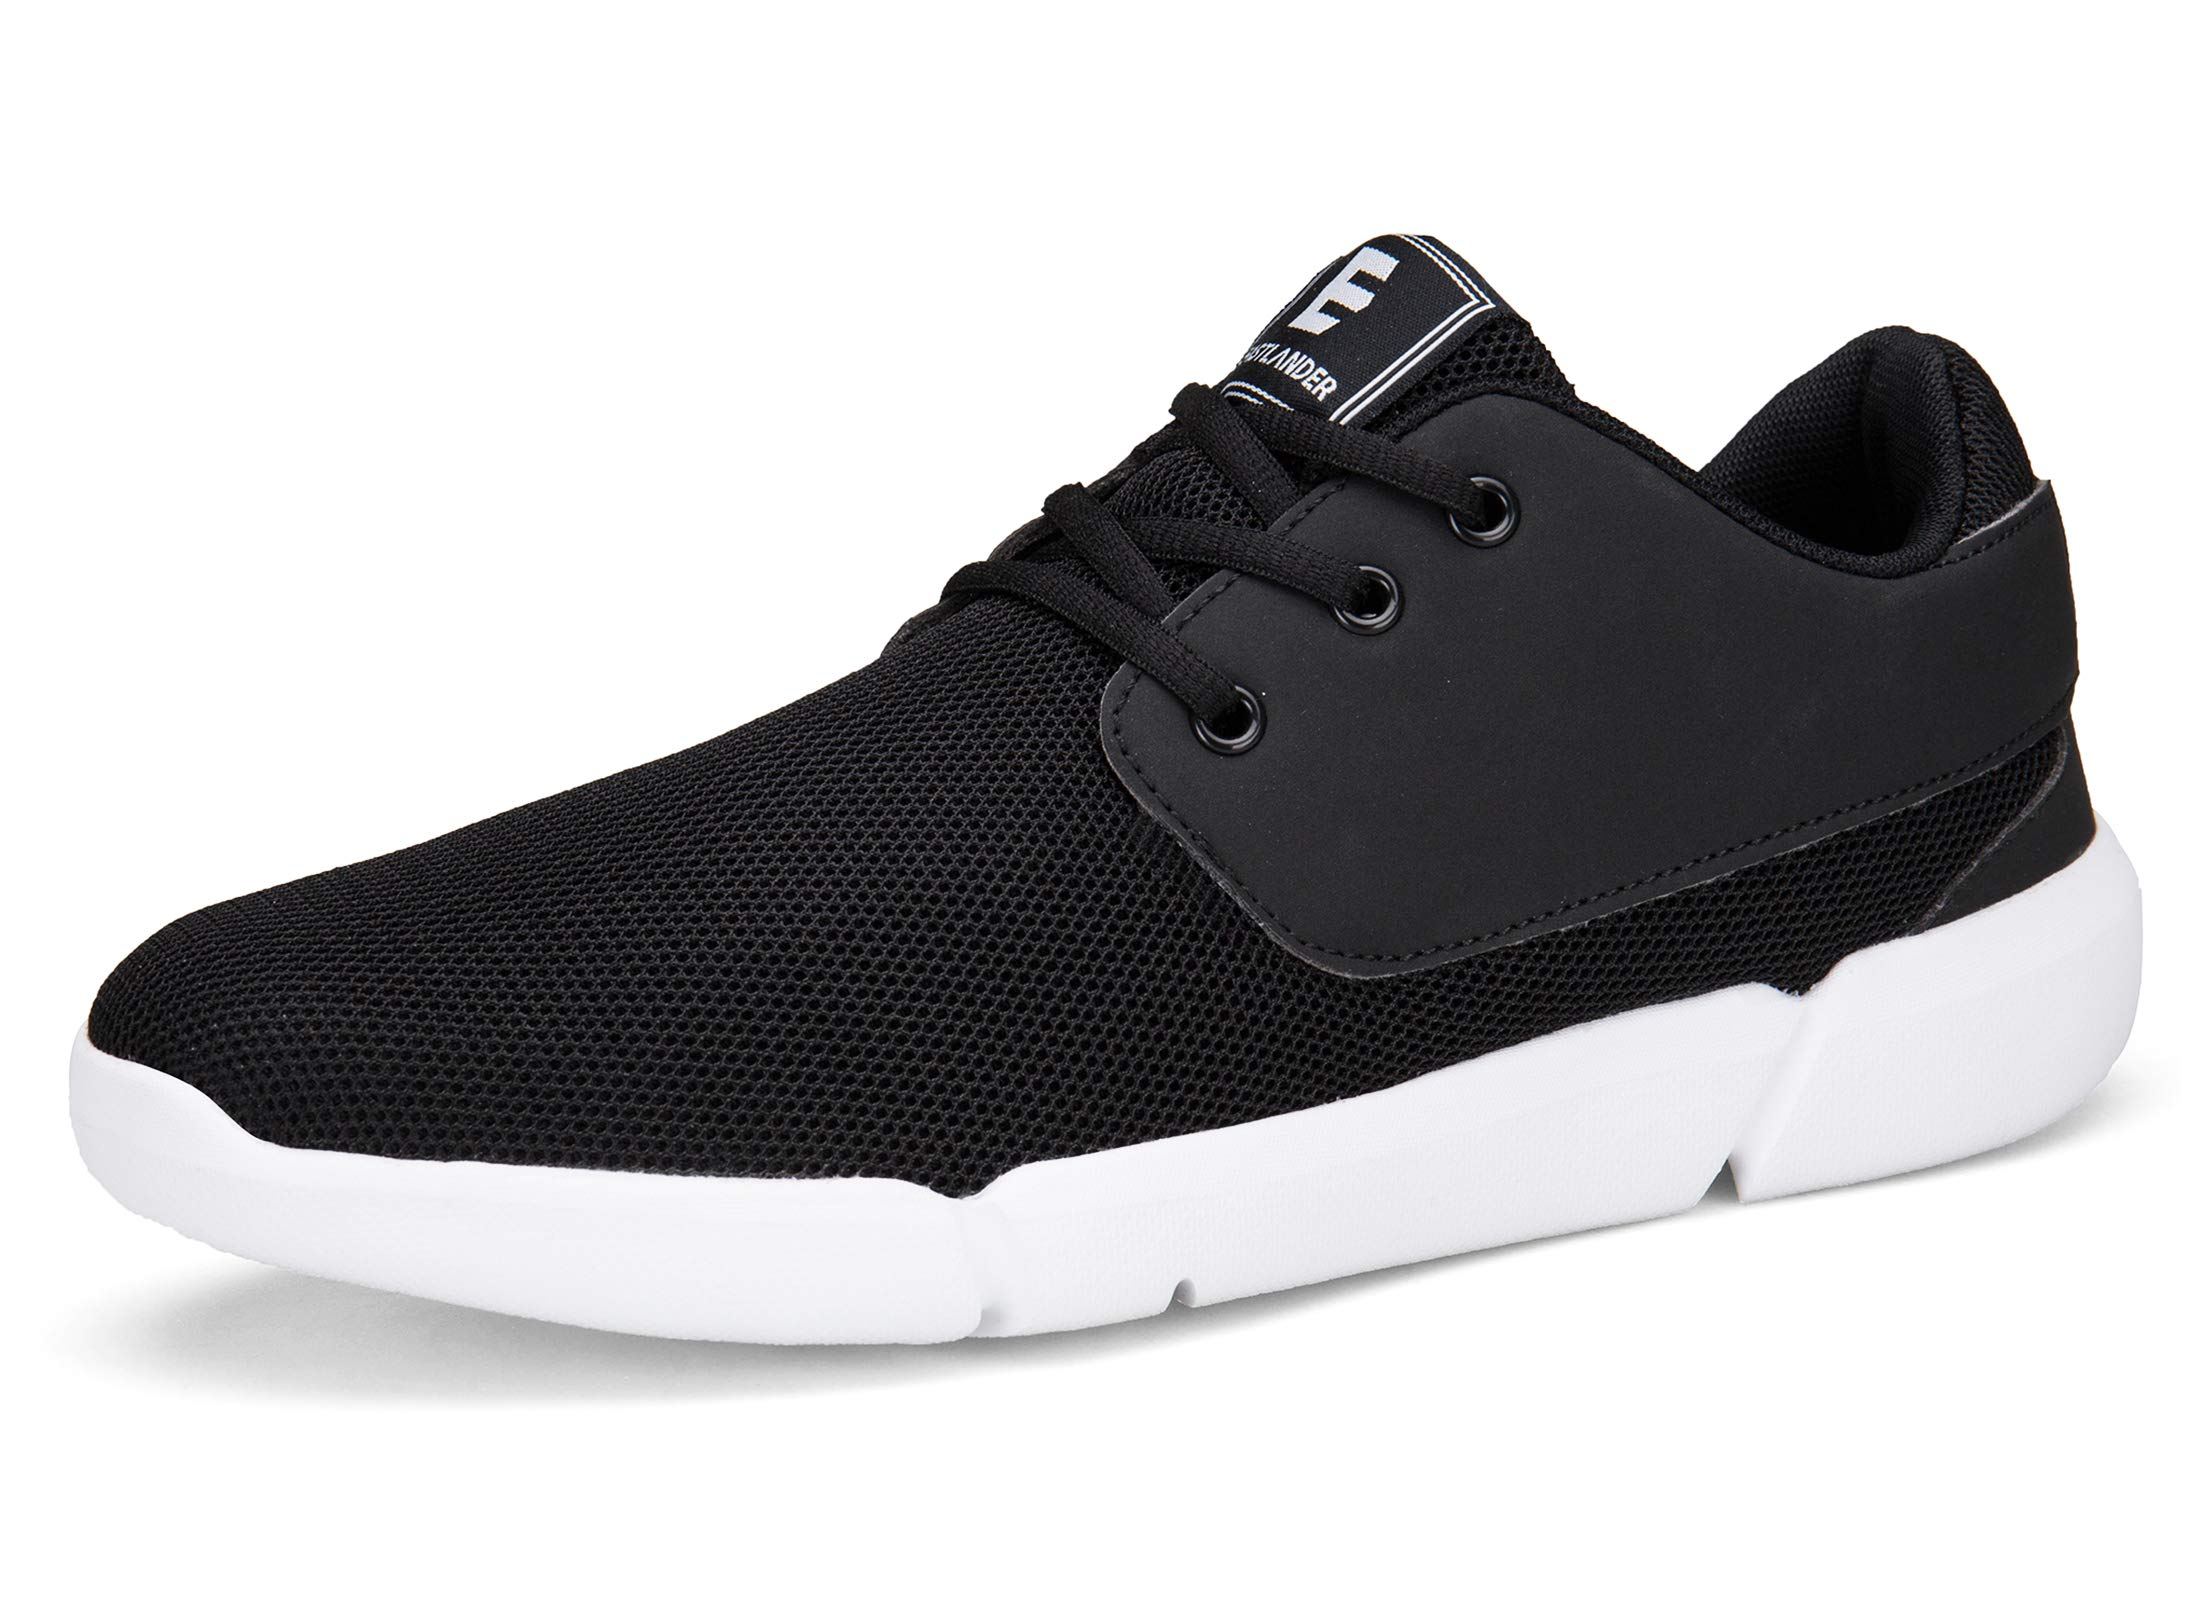 EAST LANDER Walking Shoes Men Casual Sneakers Lightweight Athletic Shoes Lace-up Running Sports Shoes SPT001-M5-42